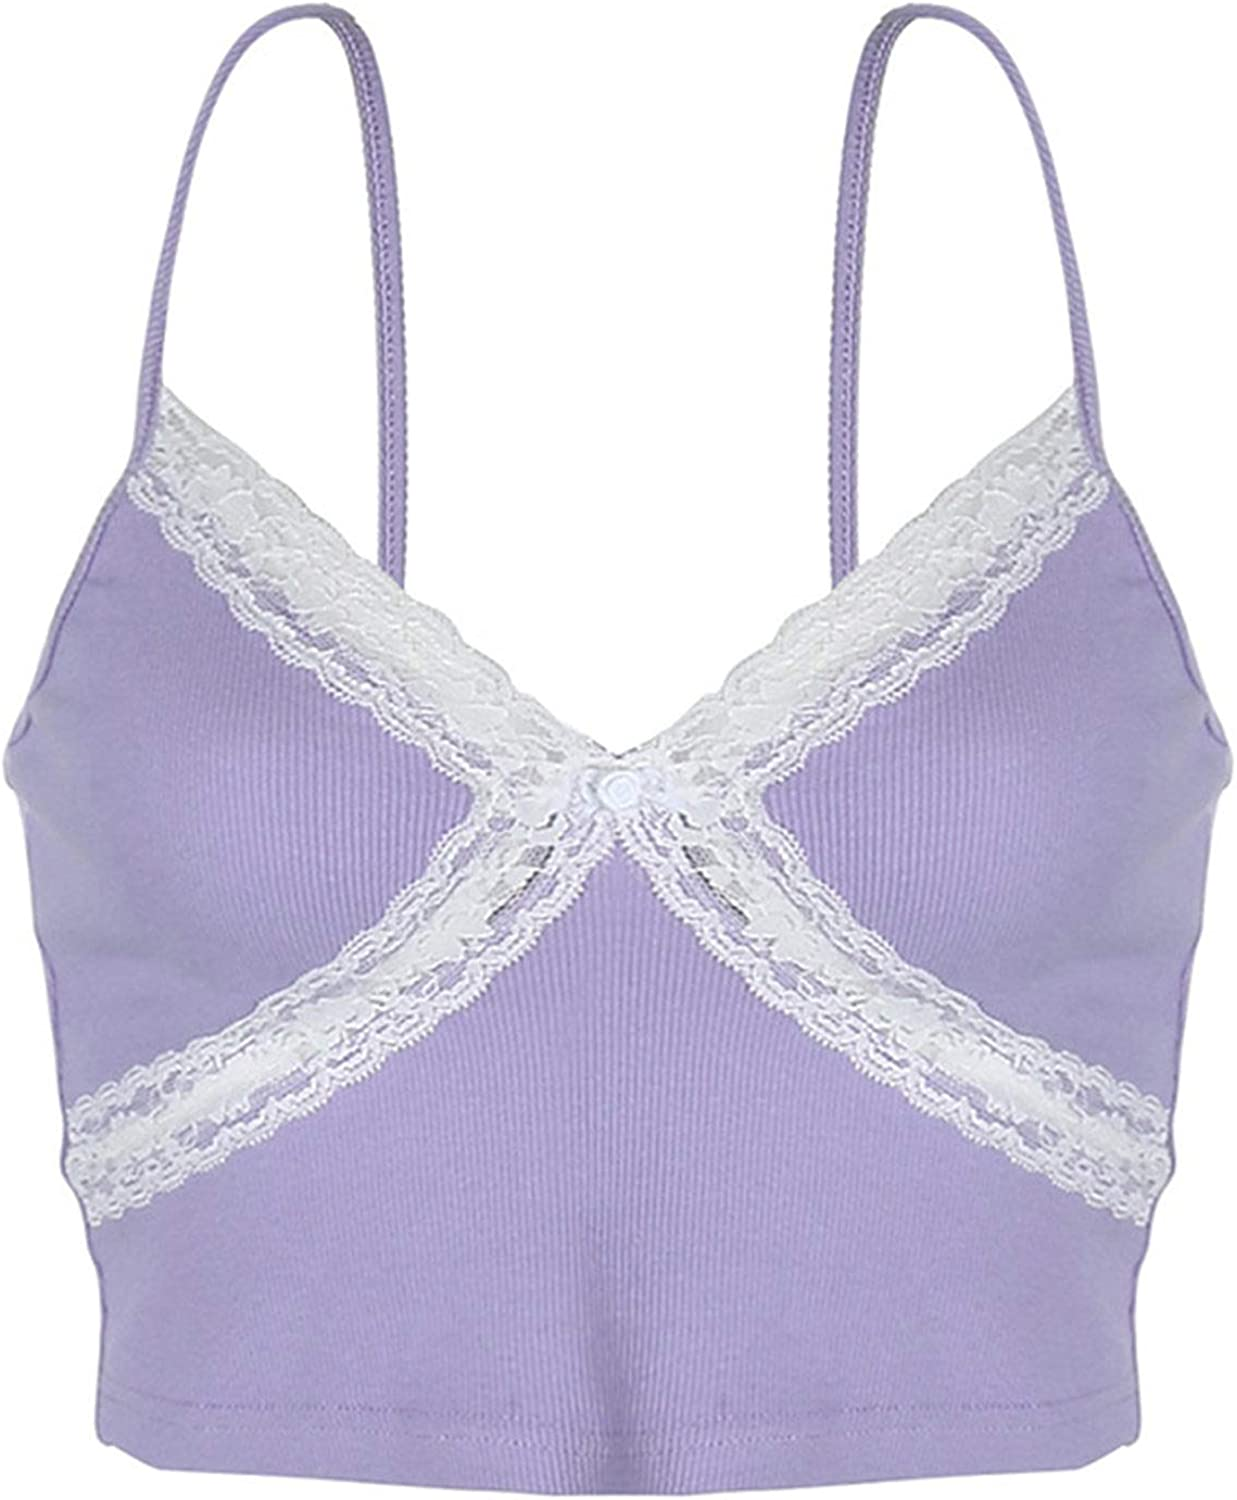 Women's Sexy Lace Floral Crop Tops Summer Patchwork V Neck Camisole Spaghetti Strap Tank Shirt Cami Top (Purple,Large)